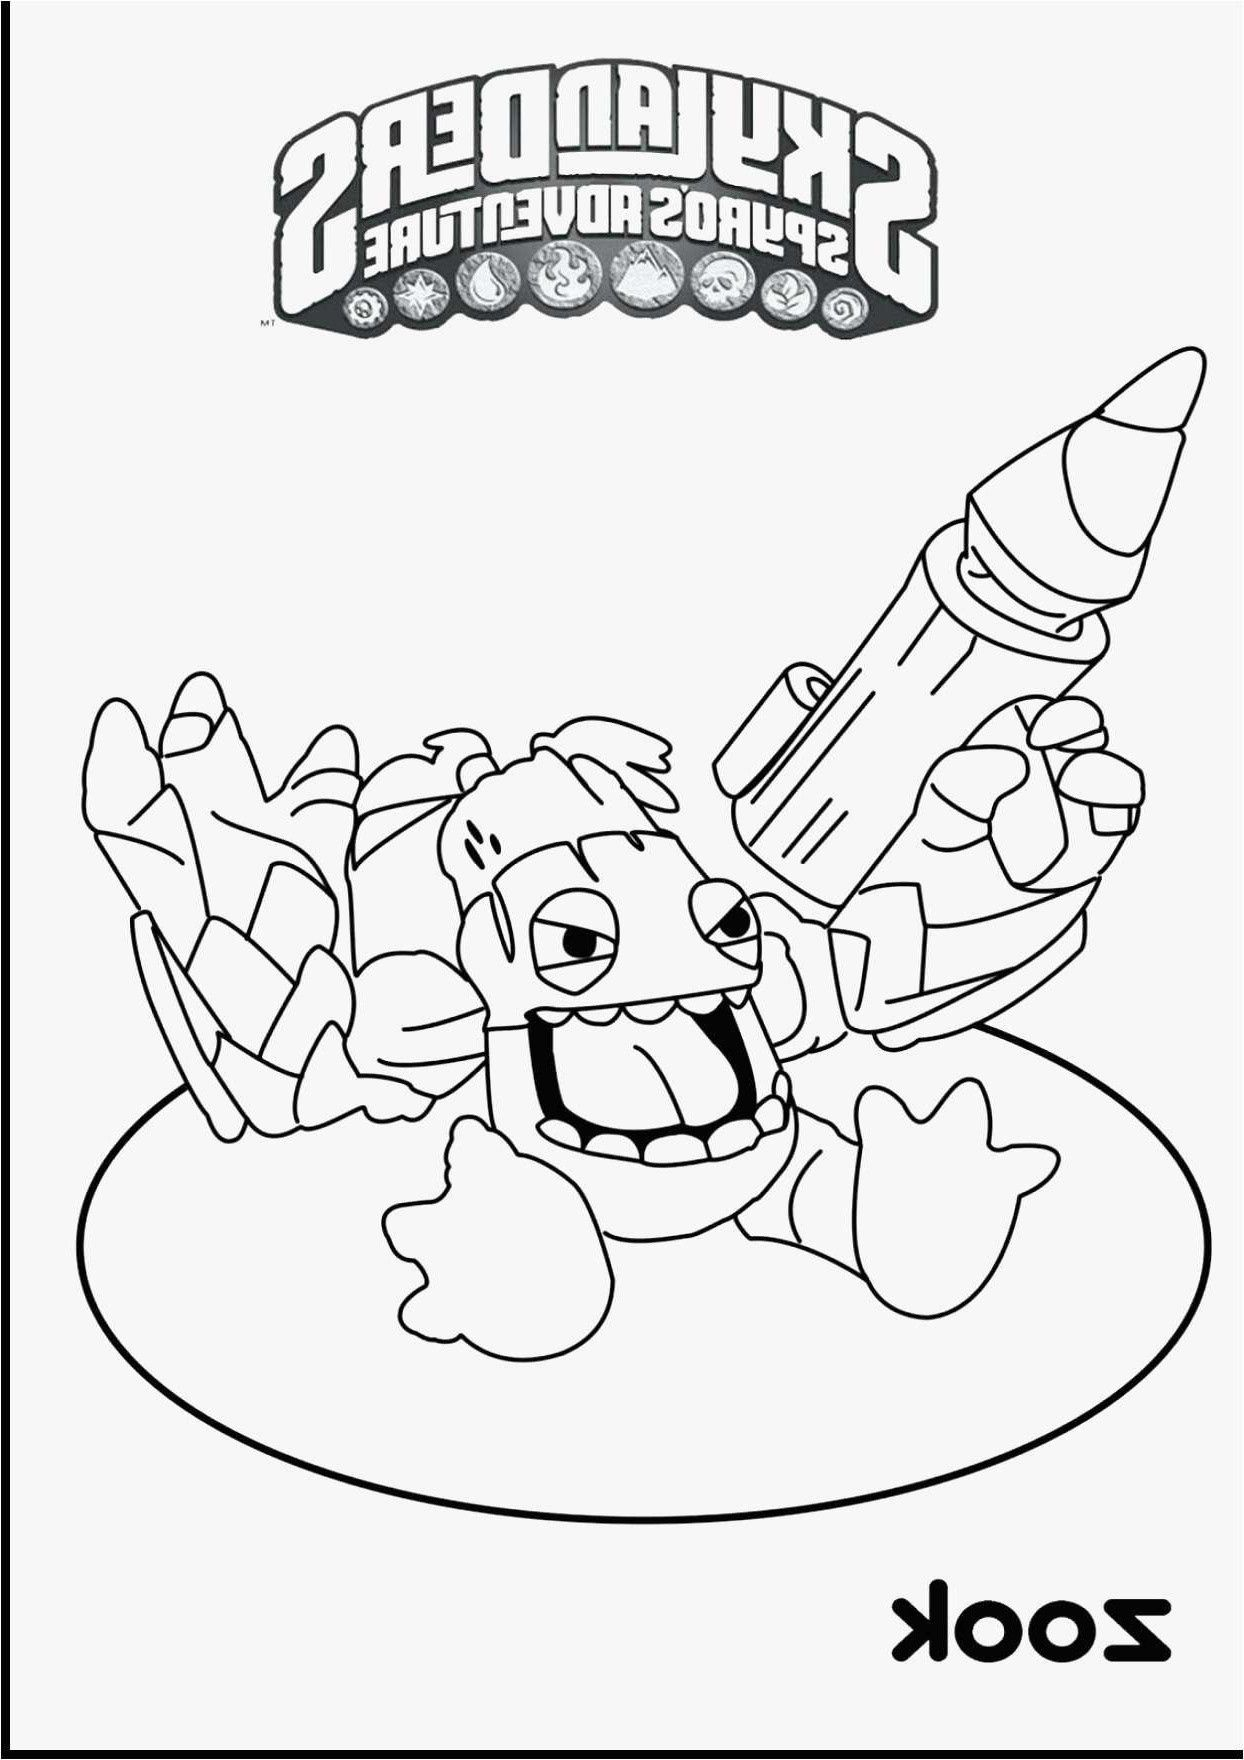 7 Farm Animals Preschool Pig Farm Animals Coloring Picture